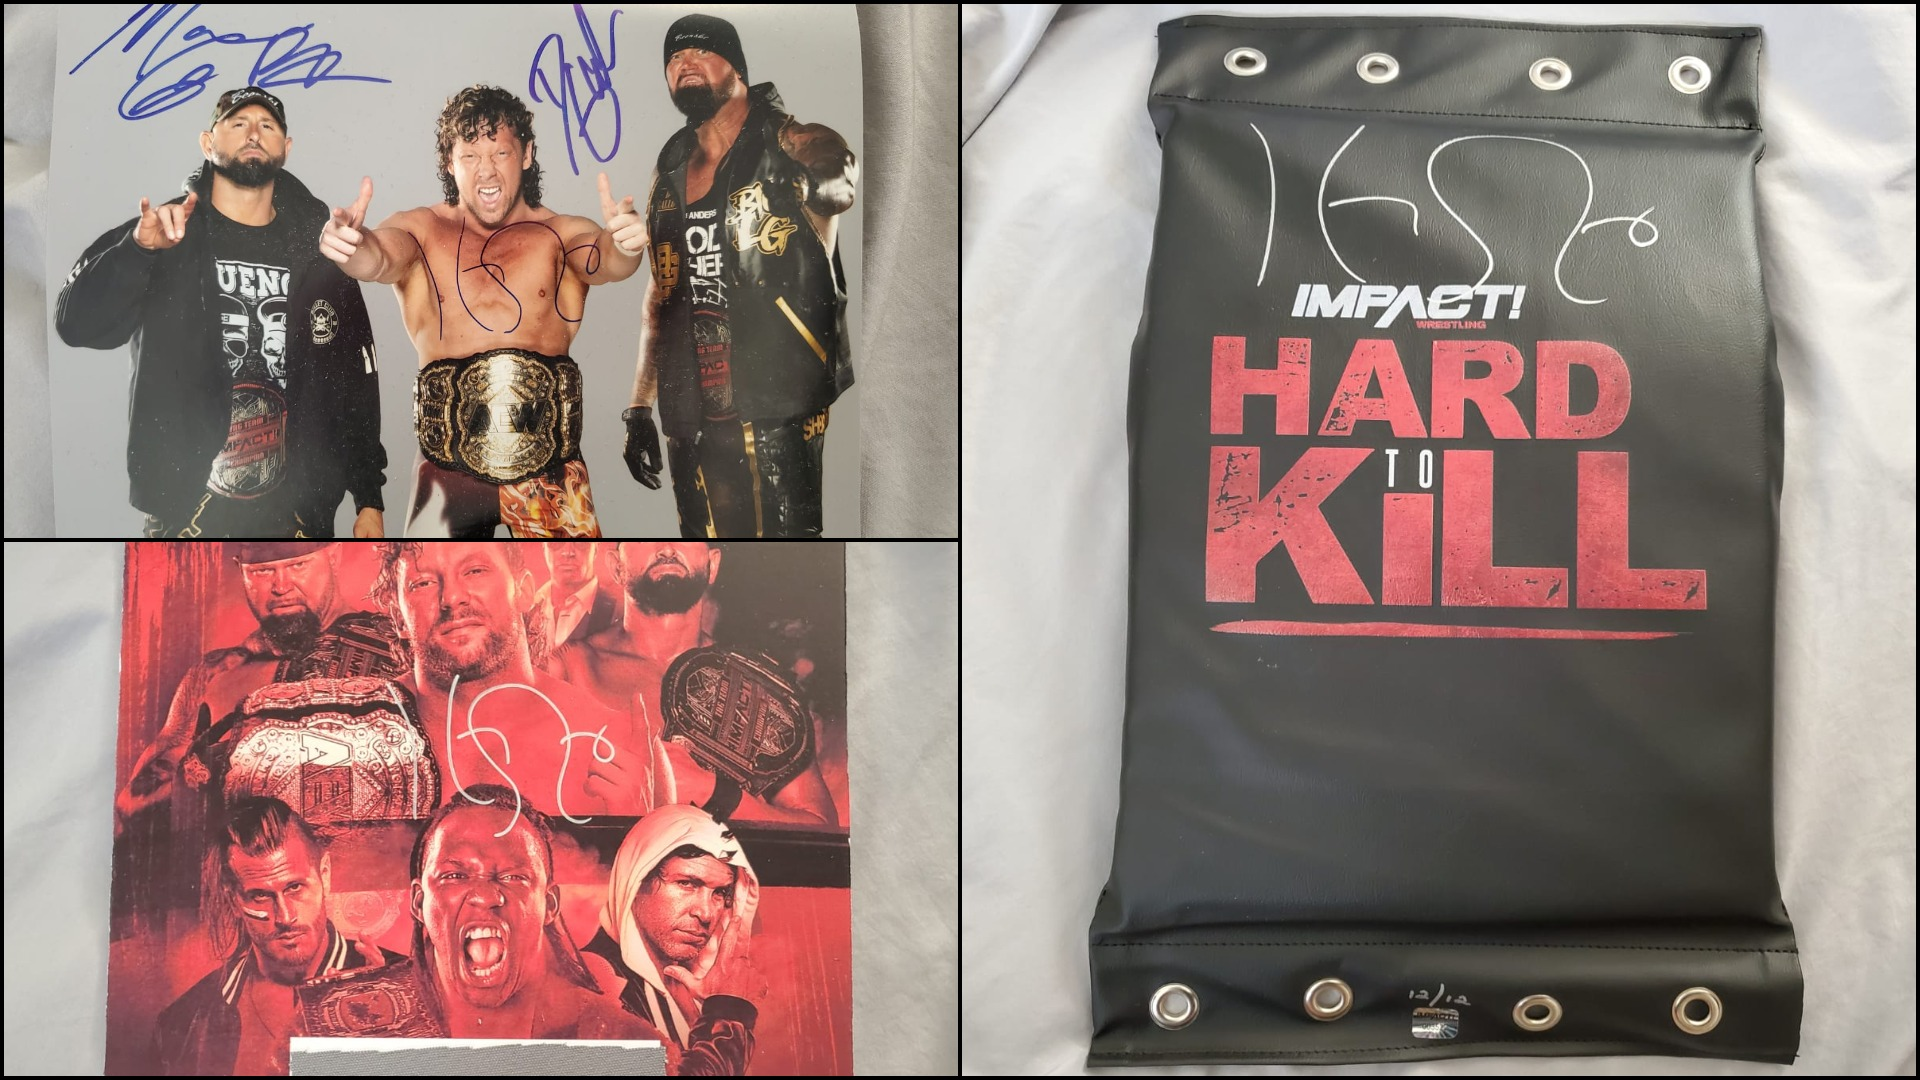 Autographed Kenny Omega Collectibles Now Available on eBay – IMPACT Wrestling